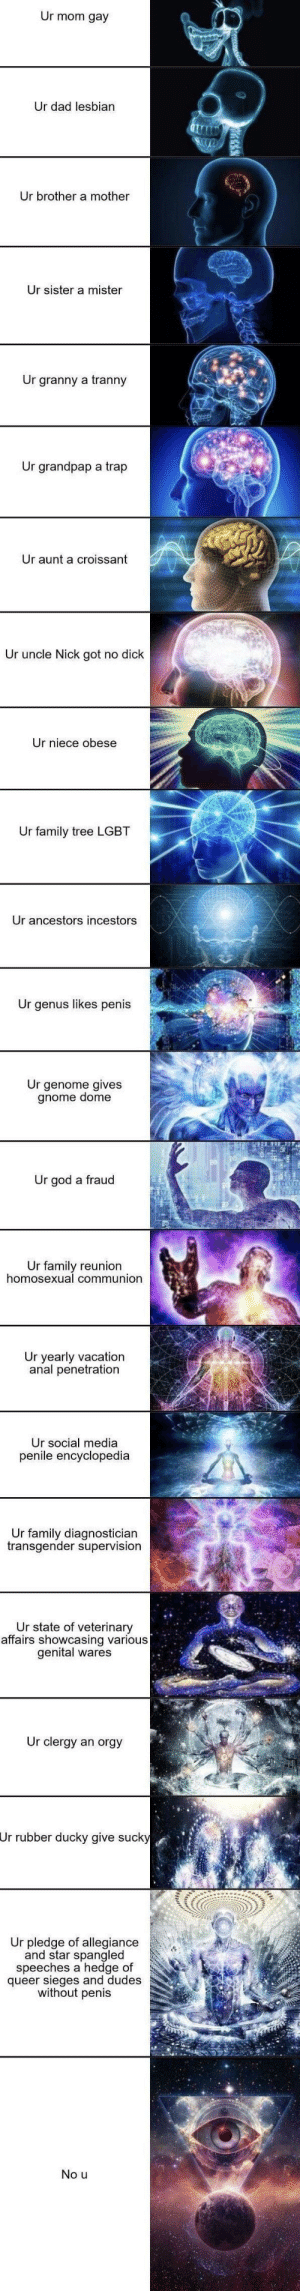 Dad, Family, and God: Ur mom gay  Ur dad lesbian  Ur brother a mother  Ur sister a mister  Ur  granny a tranny  Ur grandpap a trap  Ur aunt a croissant  Ur uncle Nick got no dick  Ur niece obese  Ur family tree LGBT  Ur ancestors incestors  Ur genus likes penis  Ur genome gives  gnome dome  Ur god a fraud  Ur family reunion  homosexual communion  Ur yearly vacation  anal penetration  Ur social media  penile encyclopedia  Ur family diagnostician  transgender supervision  Ur state of veterinary  affairs showcasing various  genital wares  Ur clergy an orgy  Ur rubber ducky give sucky  Ur pledge of allegiance  and star spangled  speeches a hedge of  queer sieges and dudes  without penis  No u Looks like your going to the shadow realm jimbo